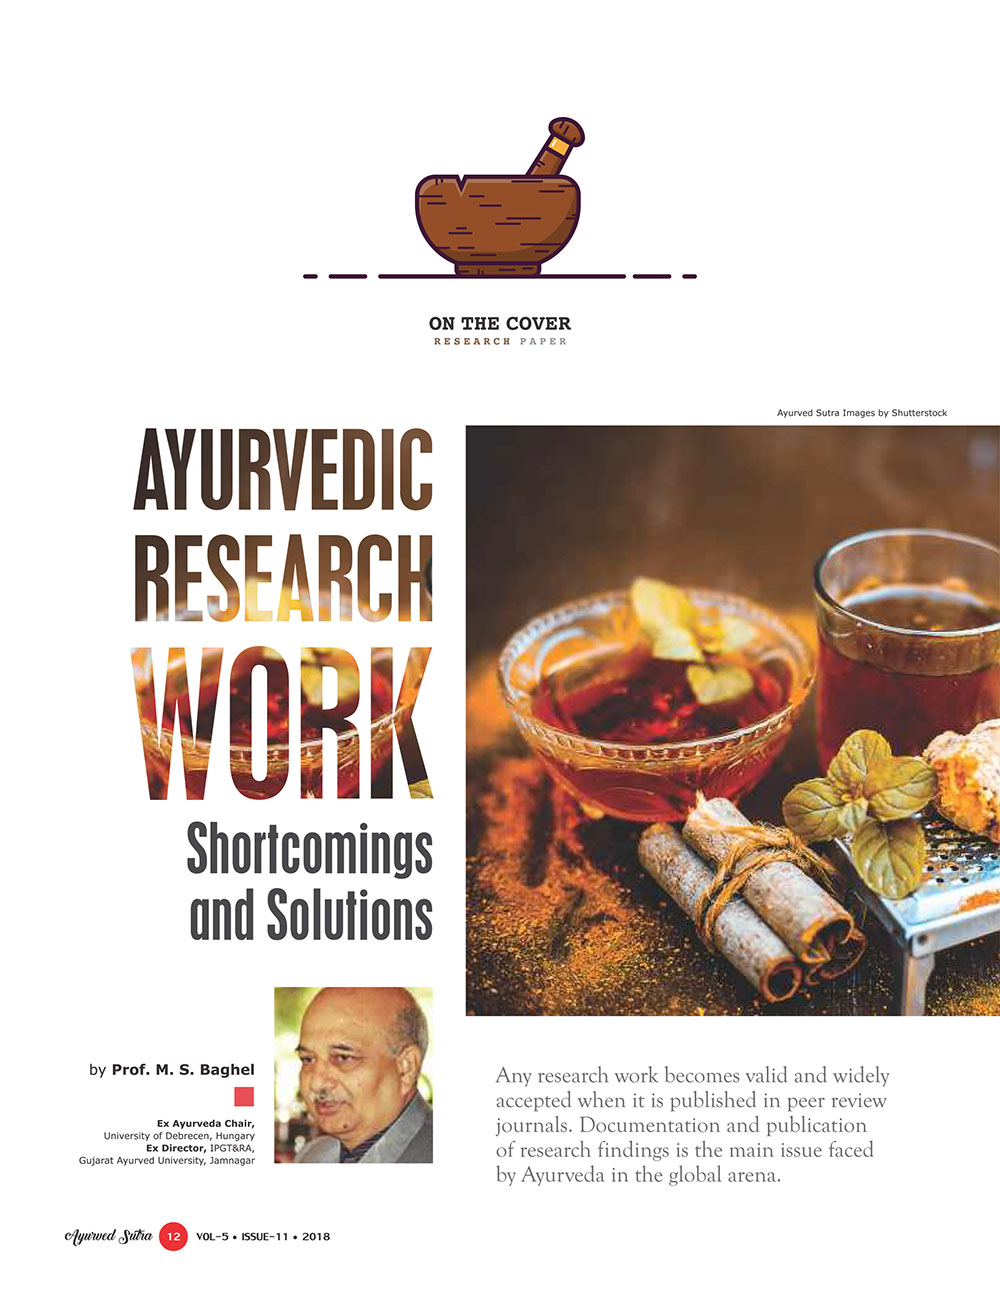 Ayurvedsutra Vol 05 issue 11 14 - Ayurvedic Research Work: Shortcomings and Solutions